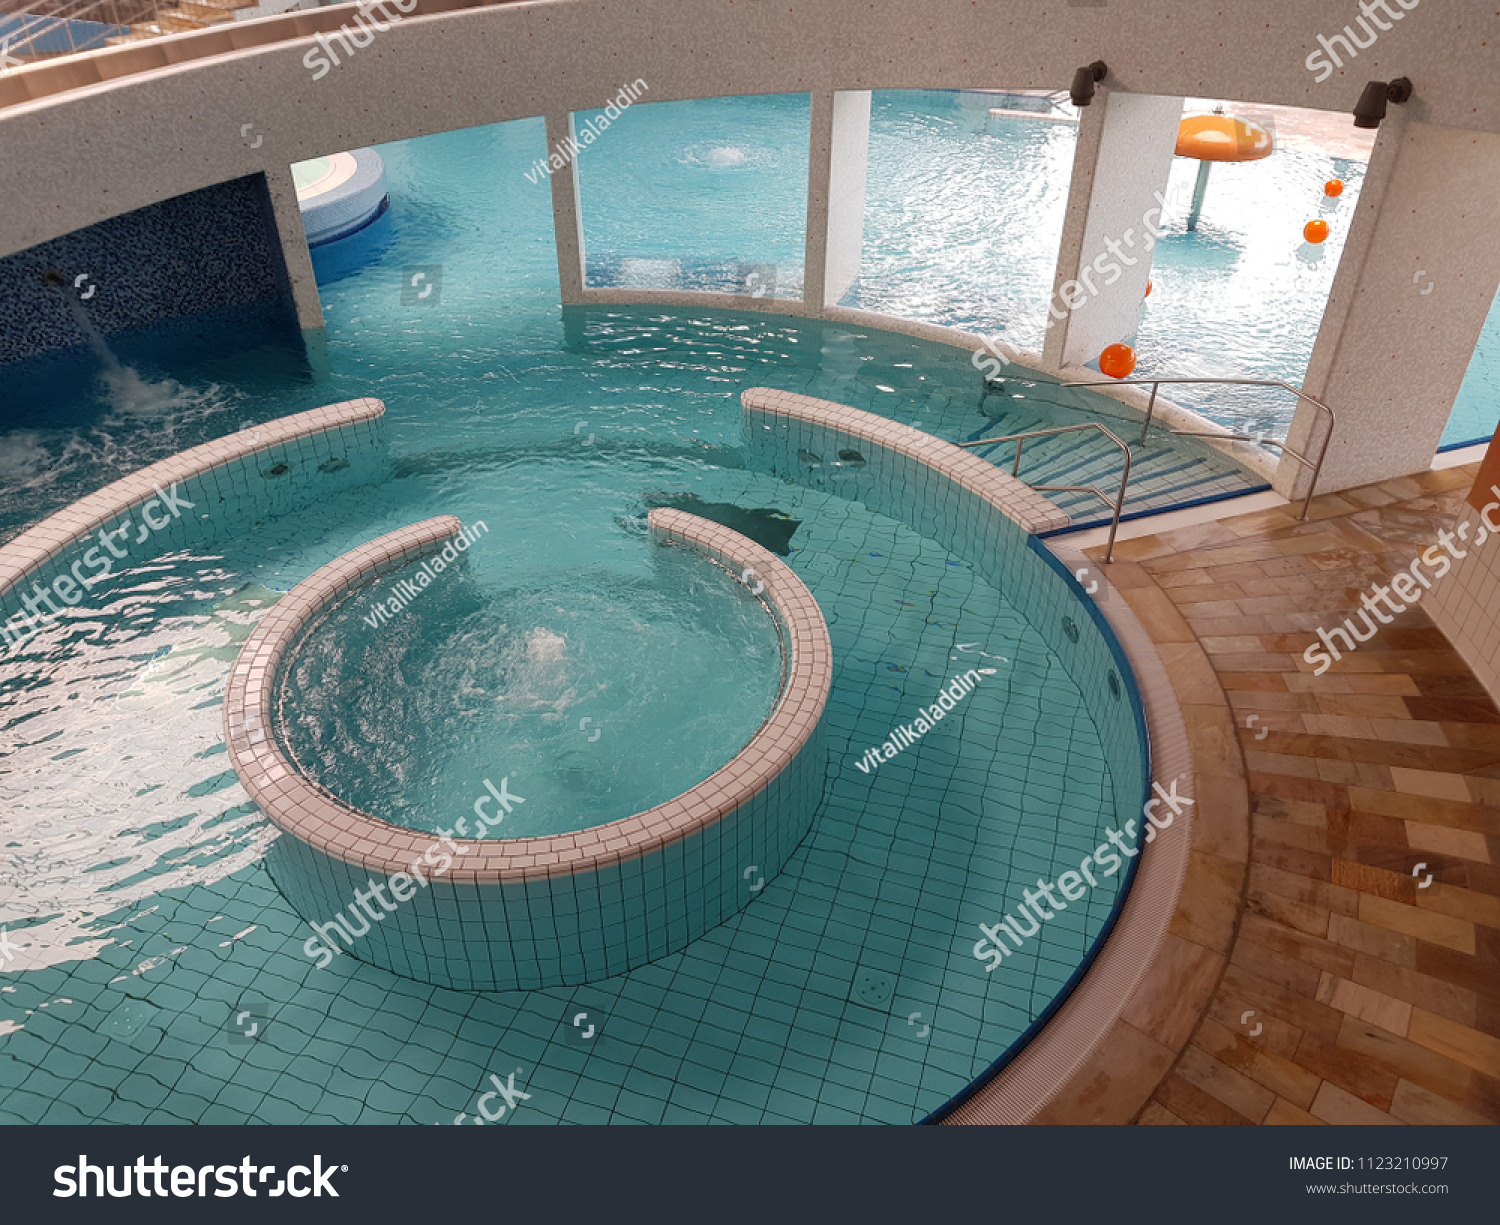 Jacuzzi With Swimming Pool Indoor Swimming Pool Jacuzzi On Resort Stock Photo Edit Now